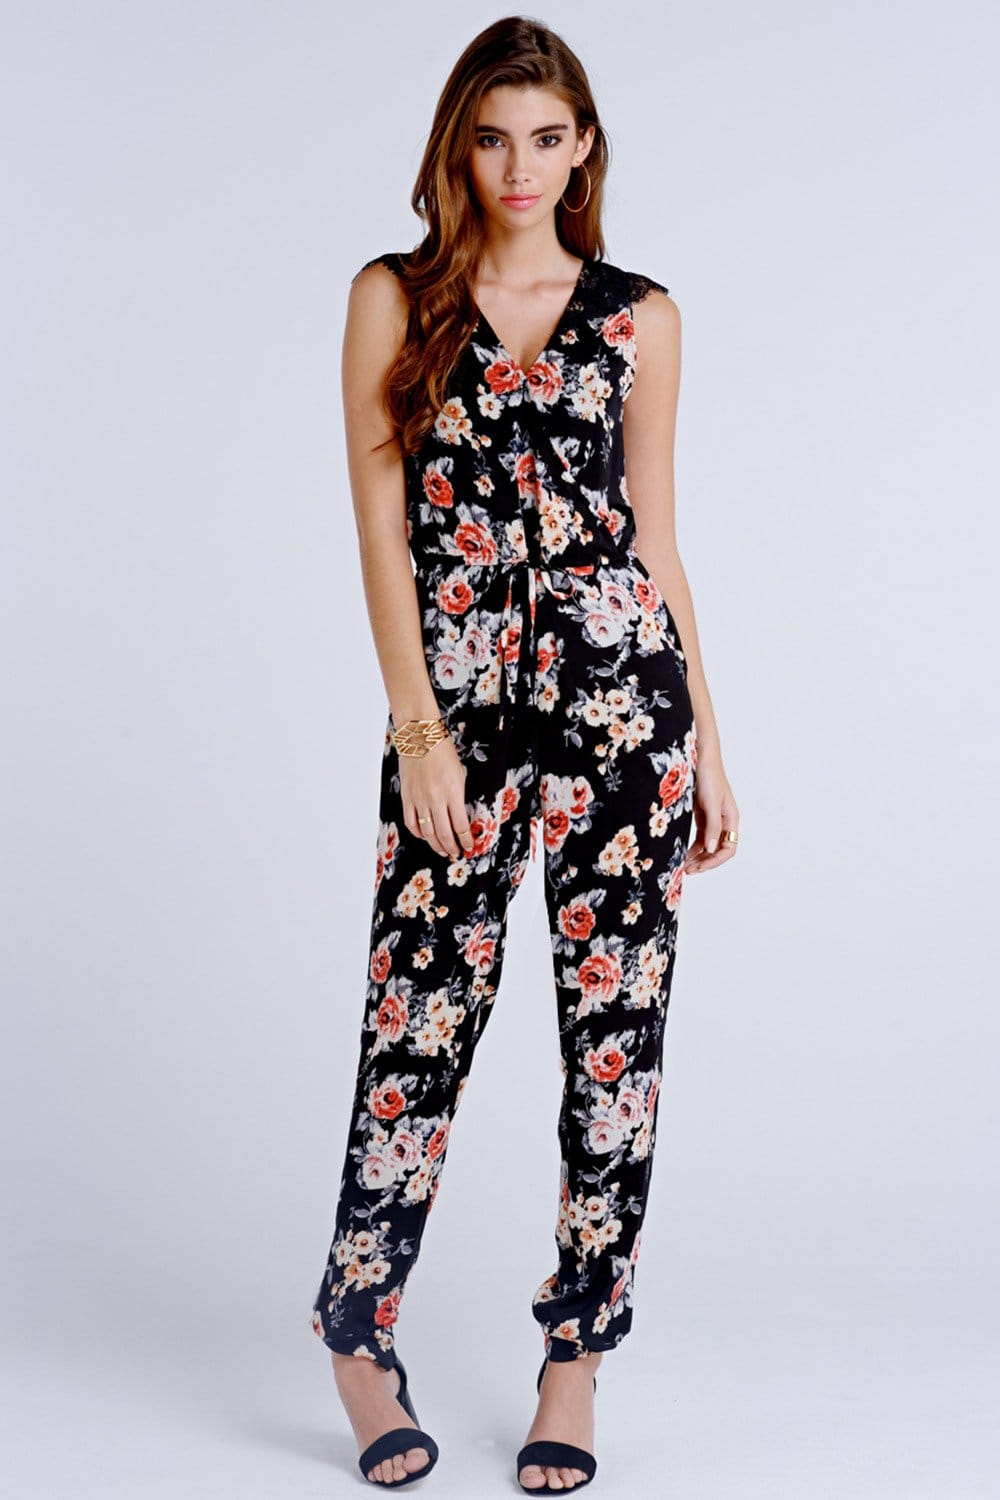 Floral Jumpsuits For Girls Images